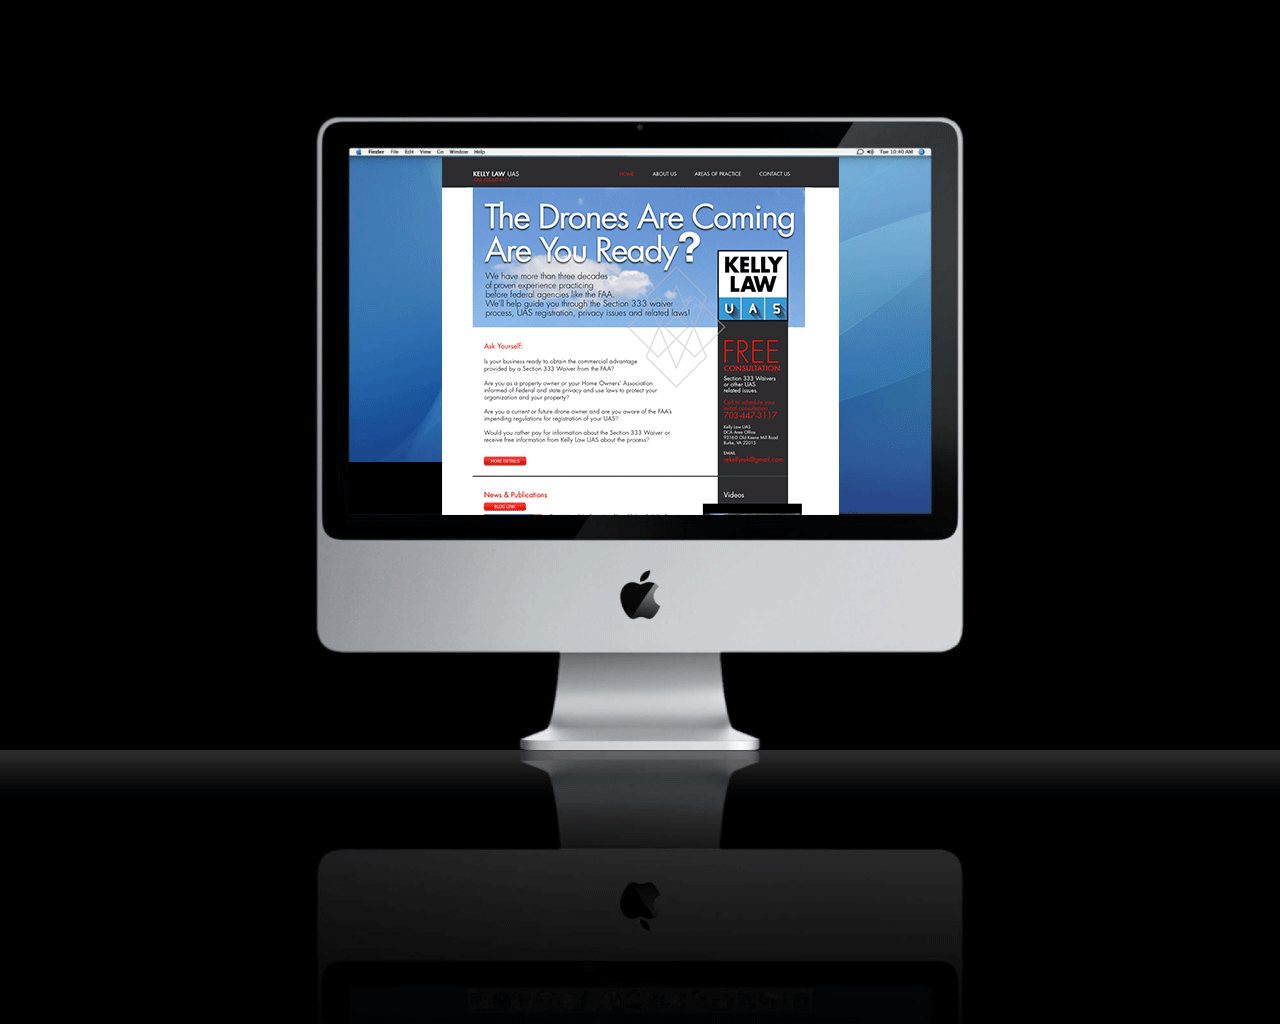 Kelly Law UAS Website